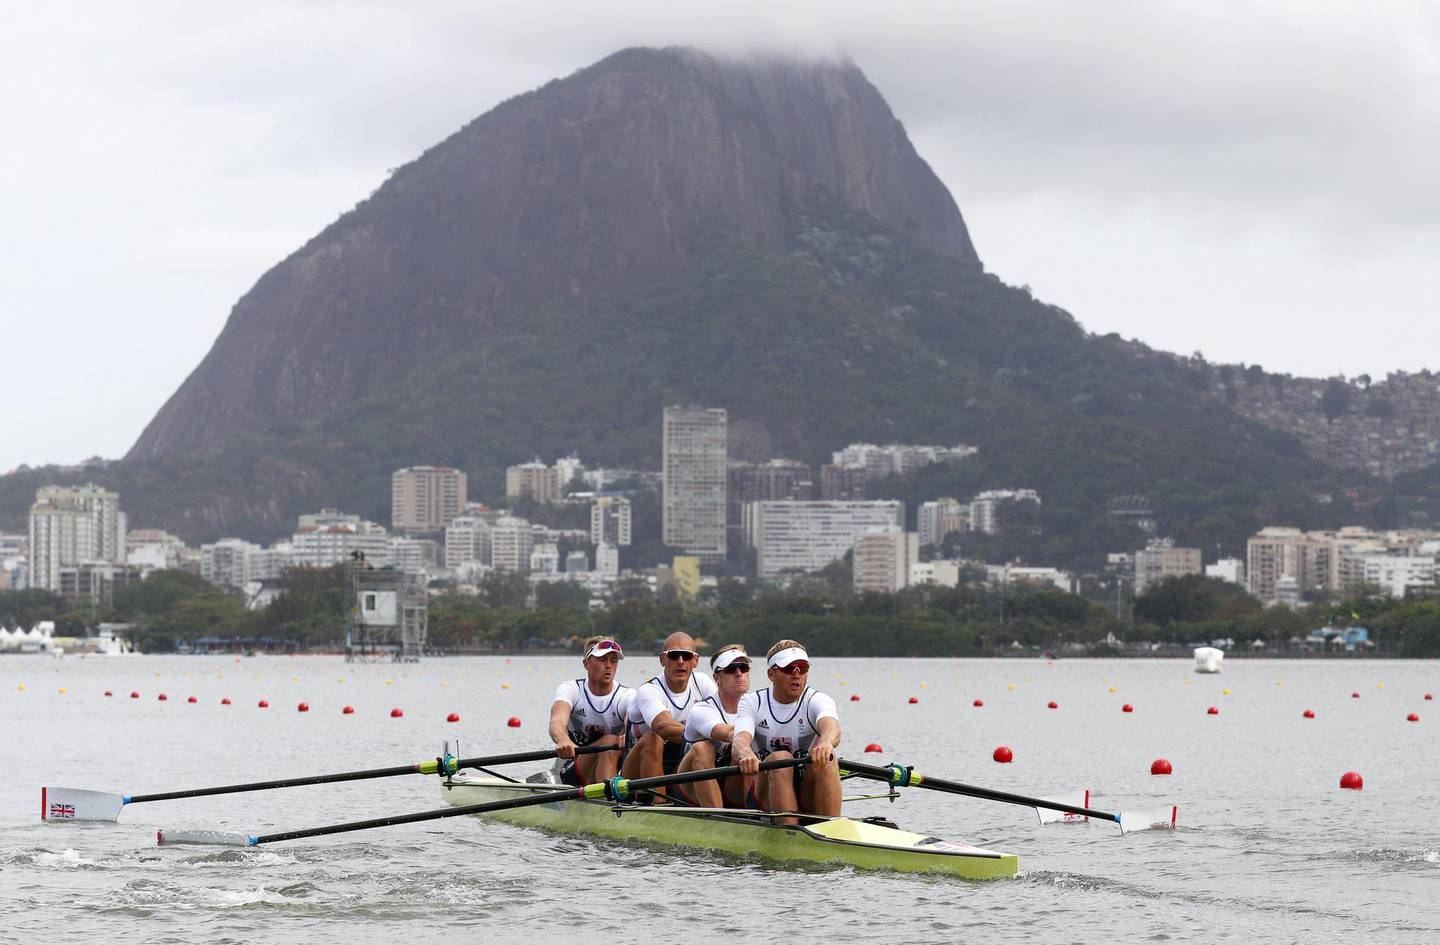 RIO DE JANEIRO, BRAZIL - AUGUST 08:  Alex Gregory, Mohamed Sbihi, George Nash and Constantine Louloudis of Great Britain during the Men's four heat 3 on Day 3 of the Rio 2016 Olympic Games at the Lagoa Stadium on August 8, 2016 in Rio de Janeiro, Brazil.  (Photo by Paul Gilham/Getty Images)